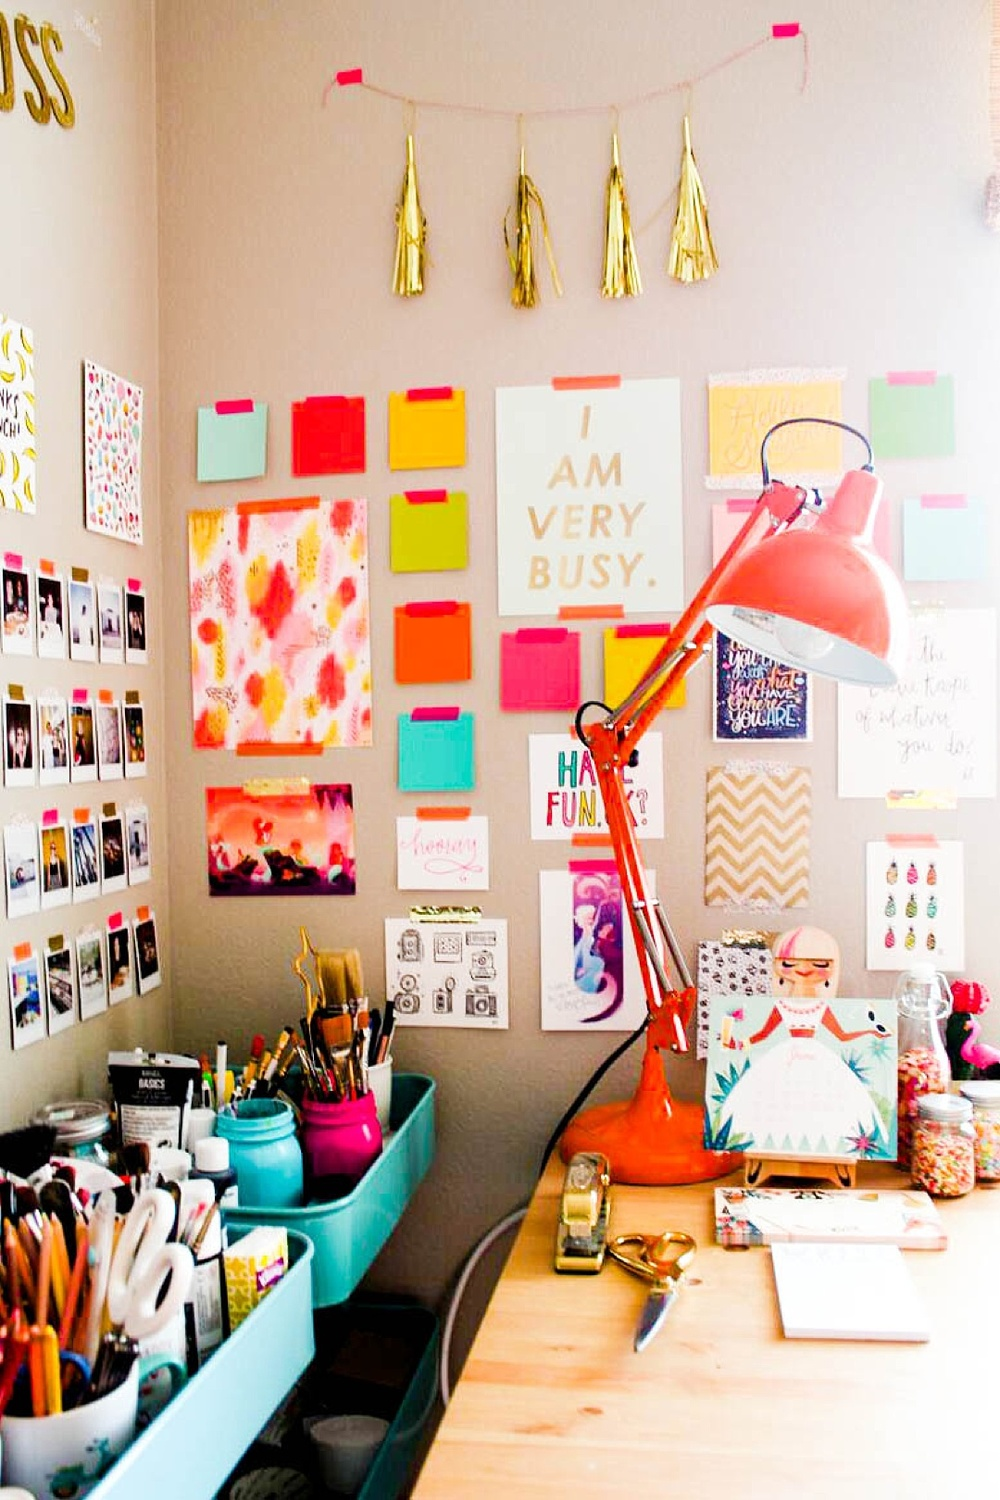 Whimsical workspaces to inspire!